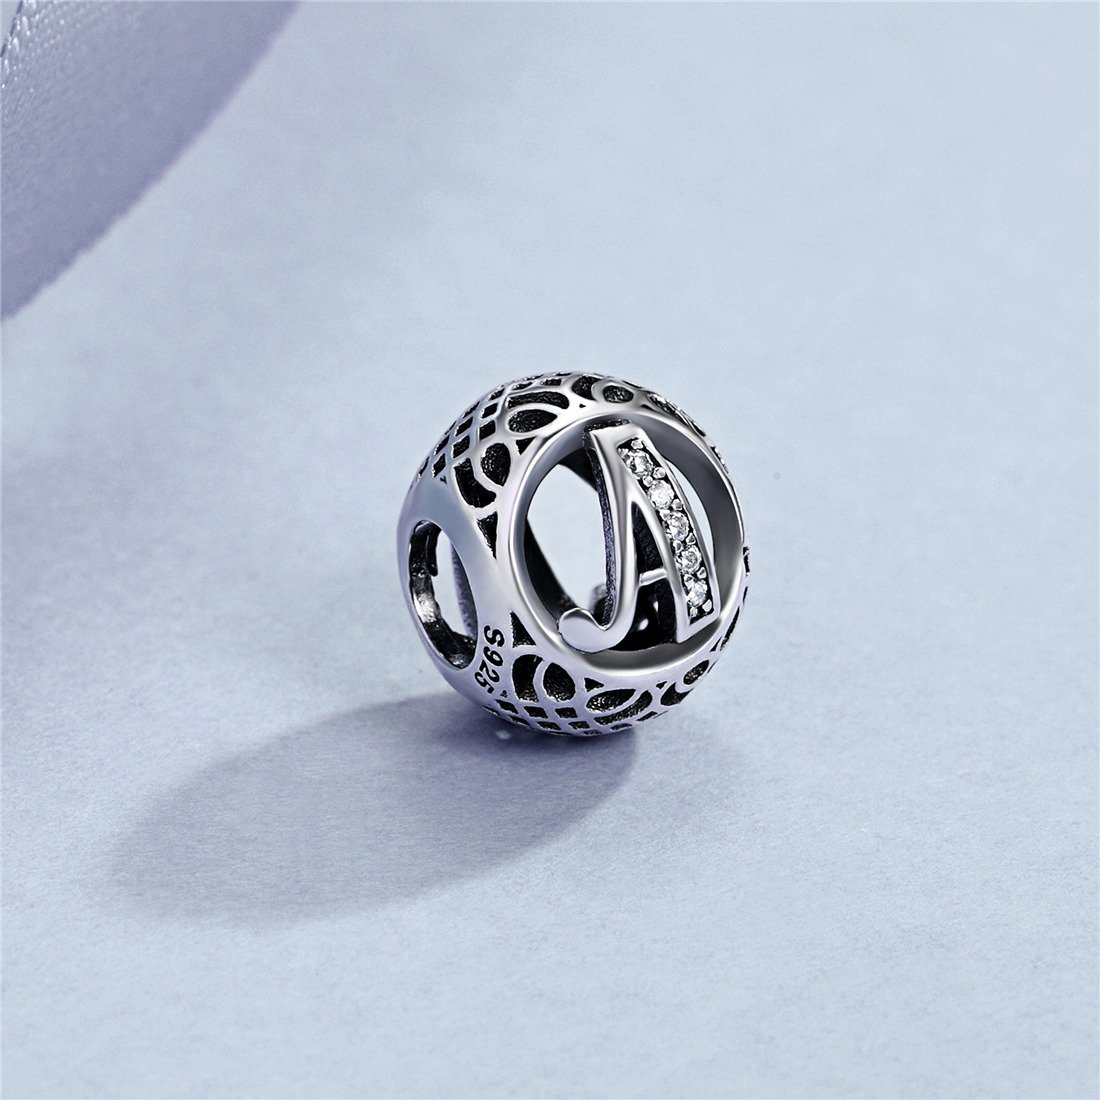 Sterling Silver Alphabet Letter A-Z Charms Initial Cubic Zirconia Charms Beads for Bracelets Necklaces